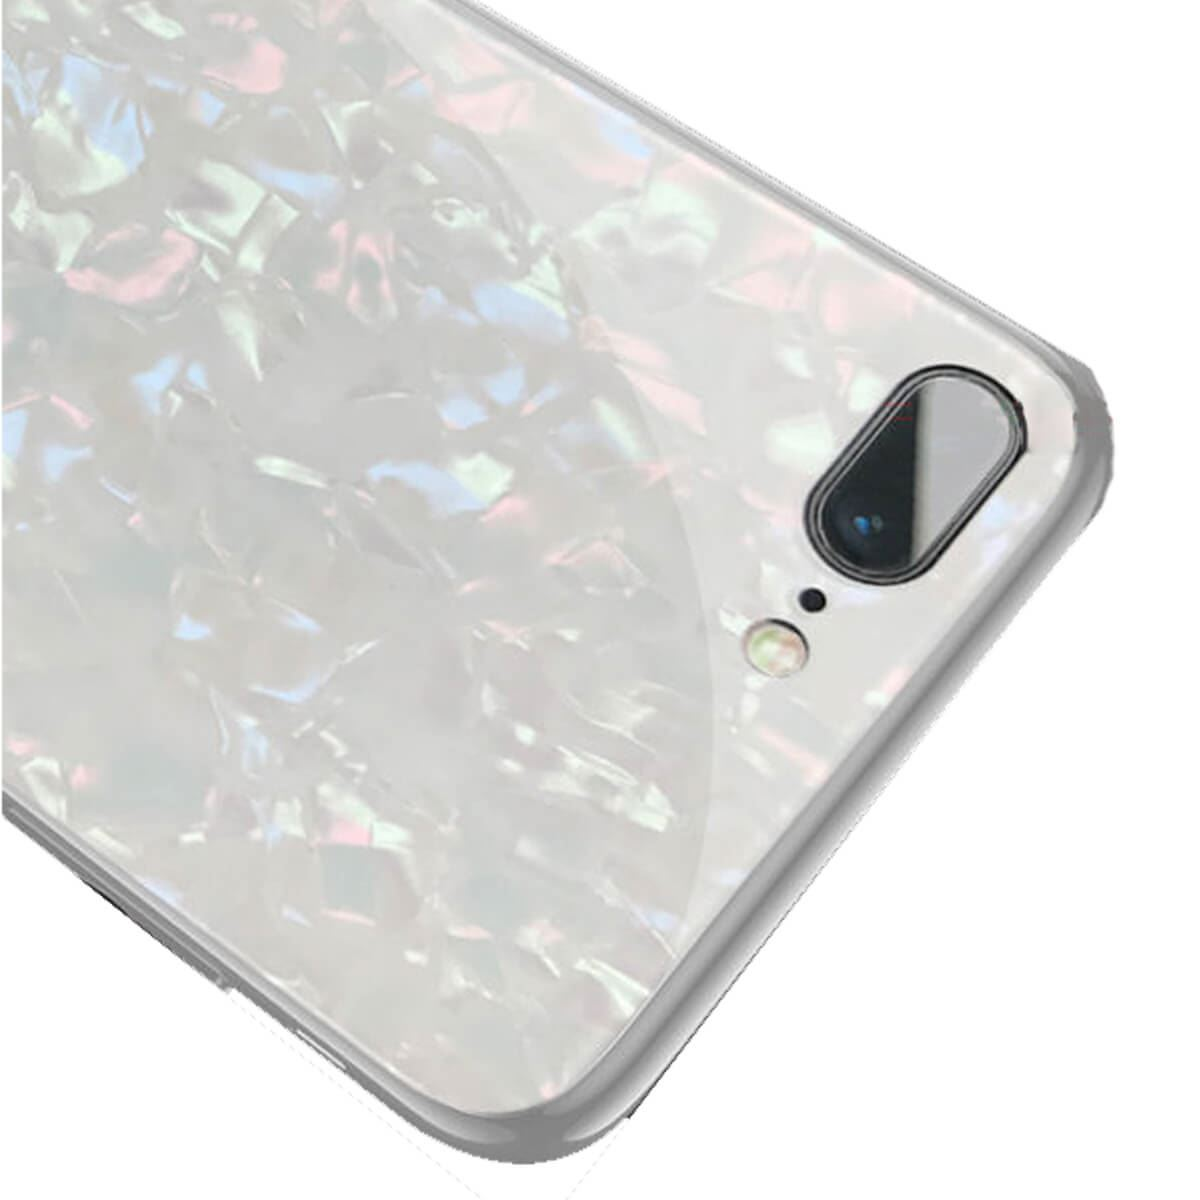 Marble-Tempered-Glass-Case-For-Apple-iPhone-X-XS-XR-Max-10-8-7-6s-6-Luxury-Cover thumbnail 11